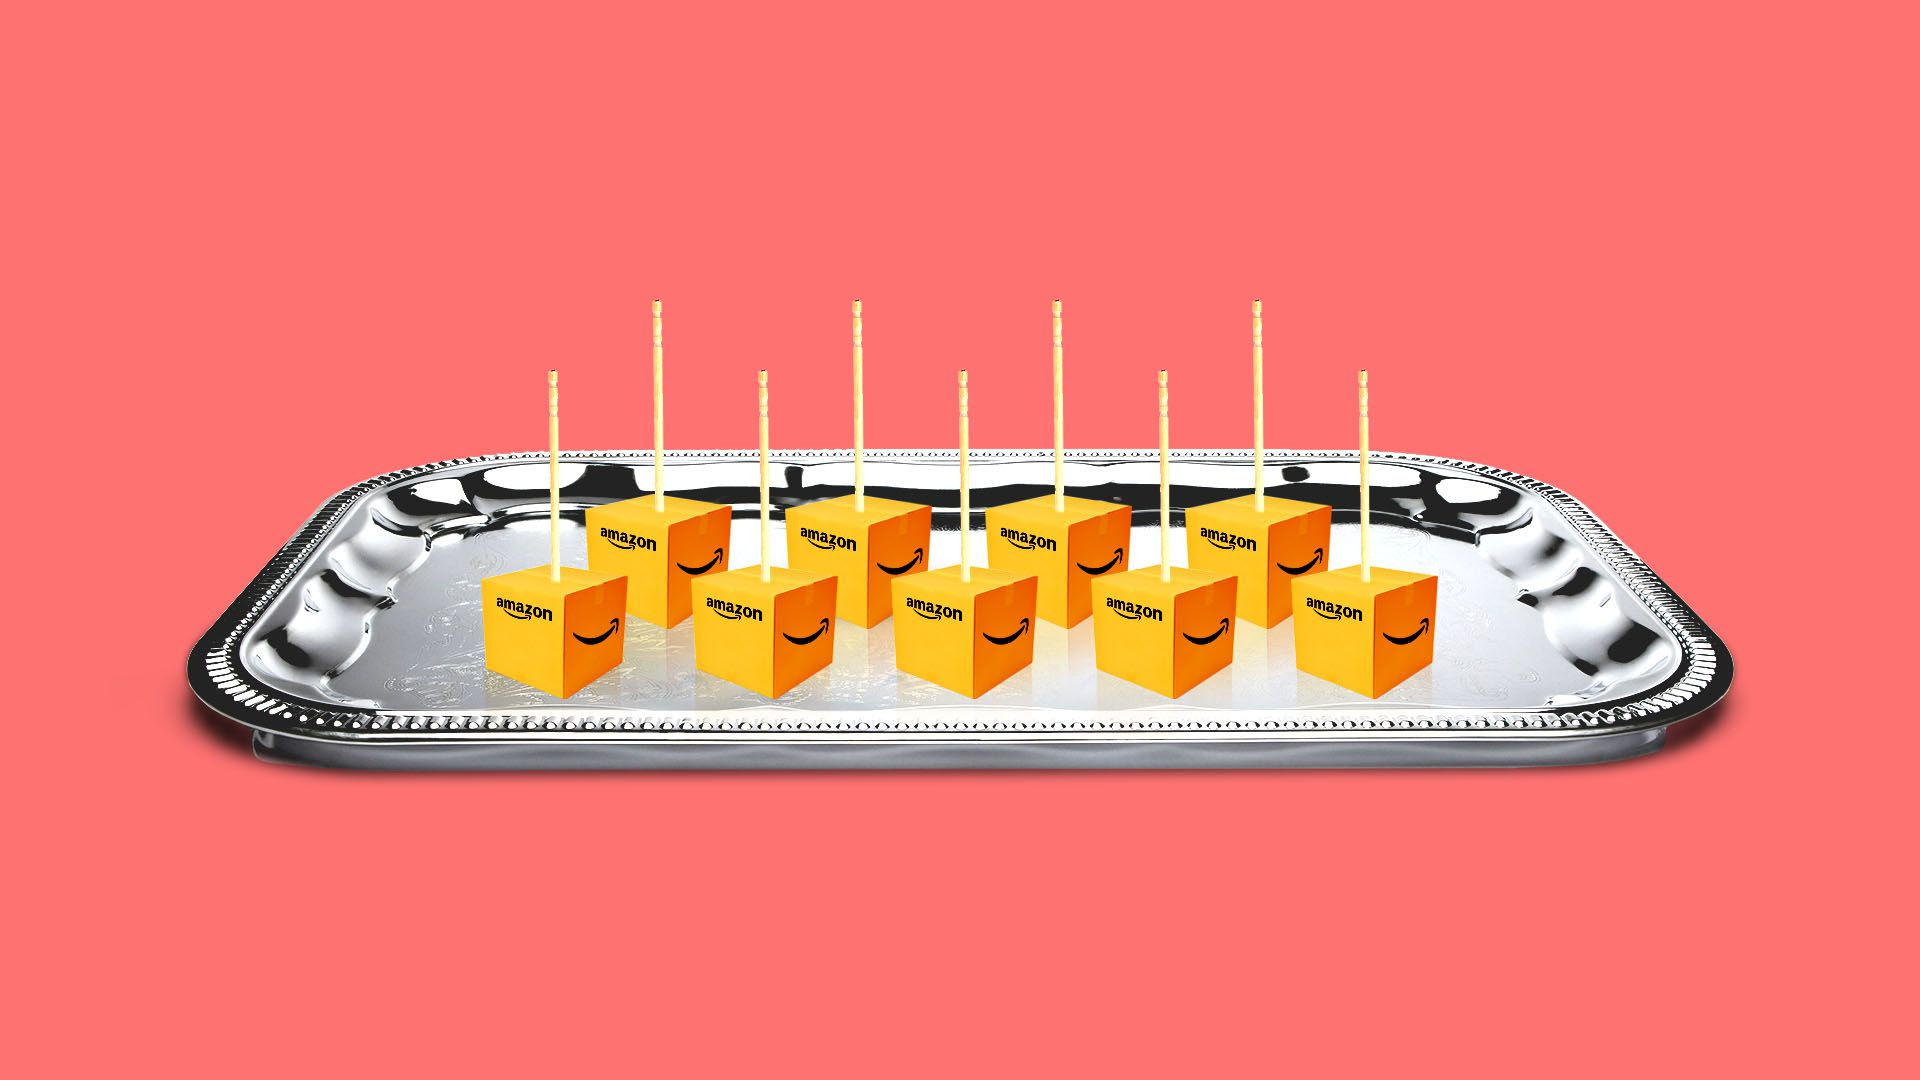 Illustration of small Amazon shipping boxes on a platter